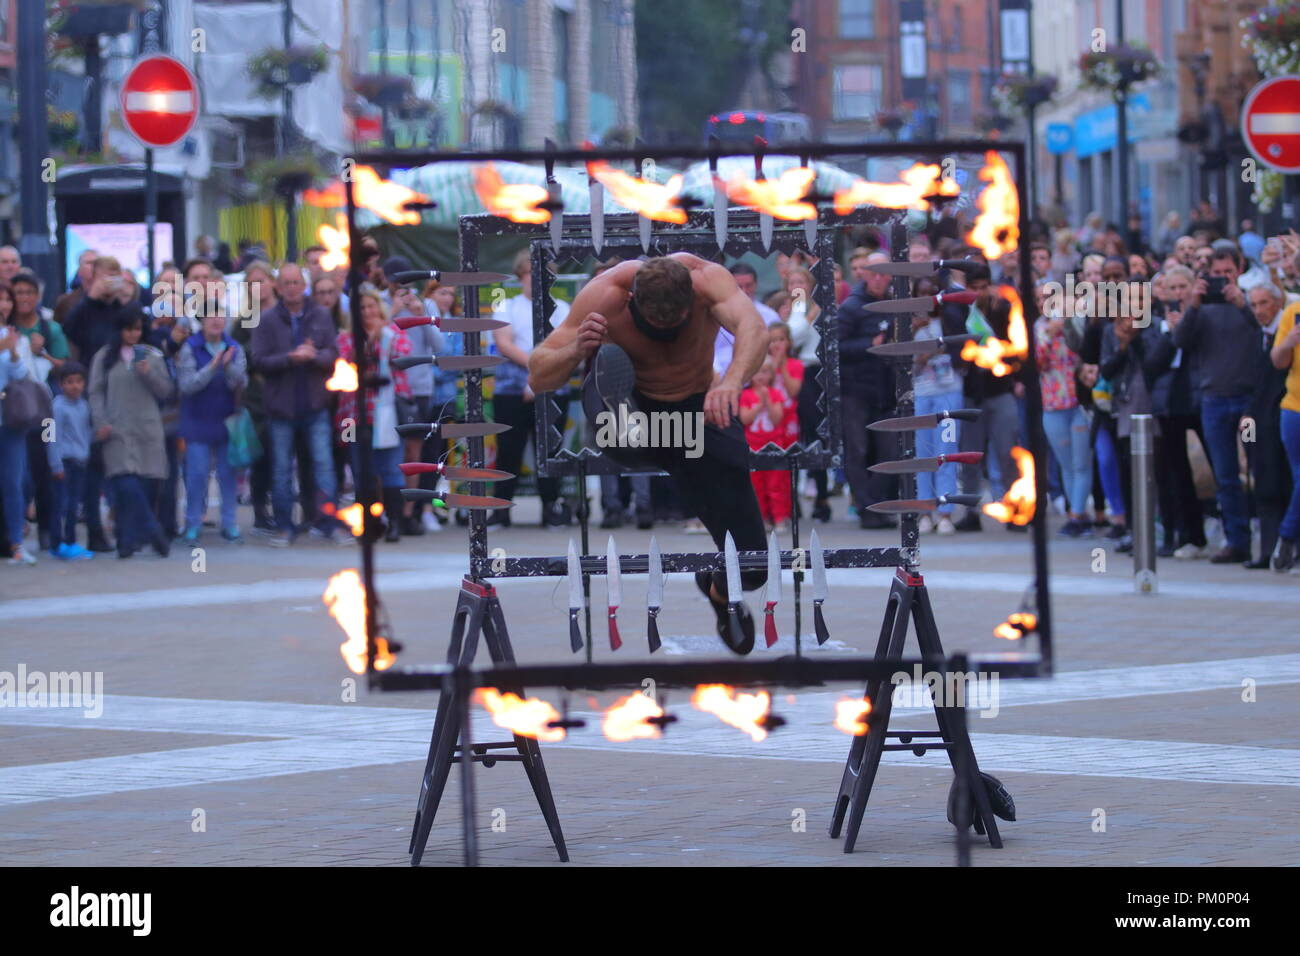 A dare devil throws his self through sharp knives & fire while  blindfolded as part of his street theatre act on Briggate, Leeds,West Yorkshire. - Stock Image